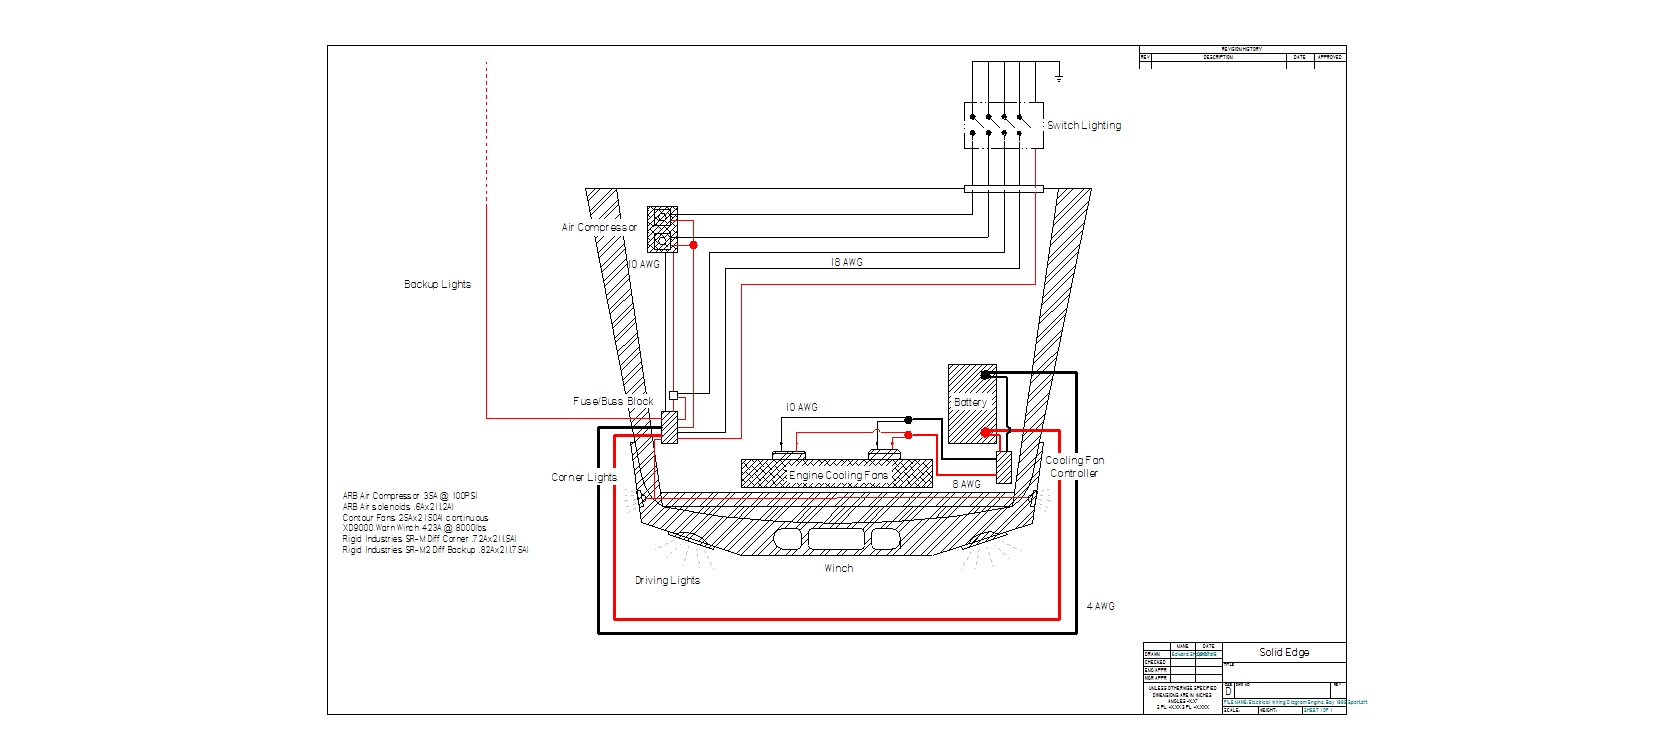 100 Watt Metal Halide Ballast Wiring Diagram 3 Phase